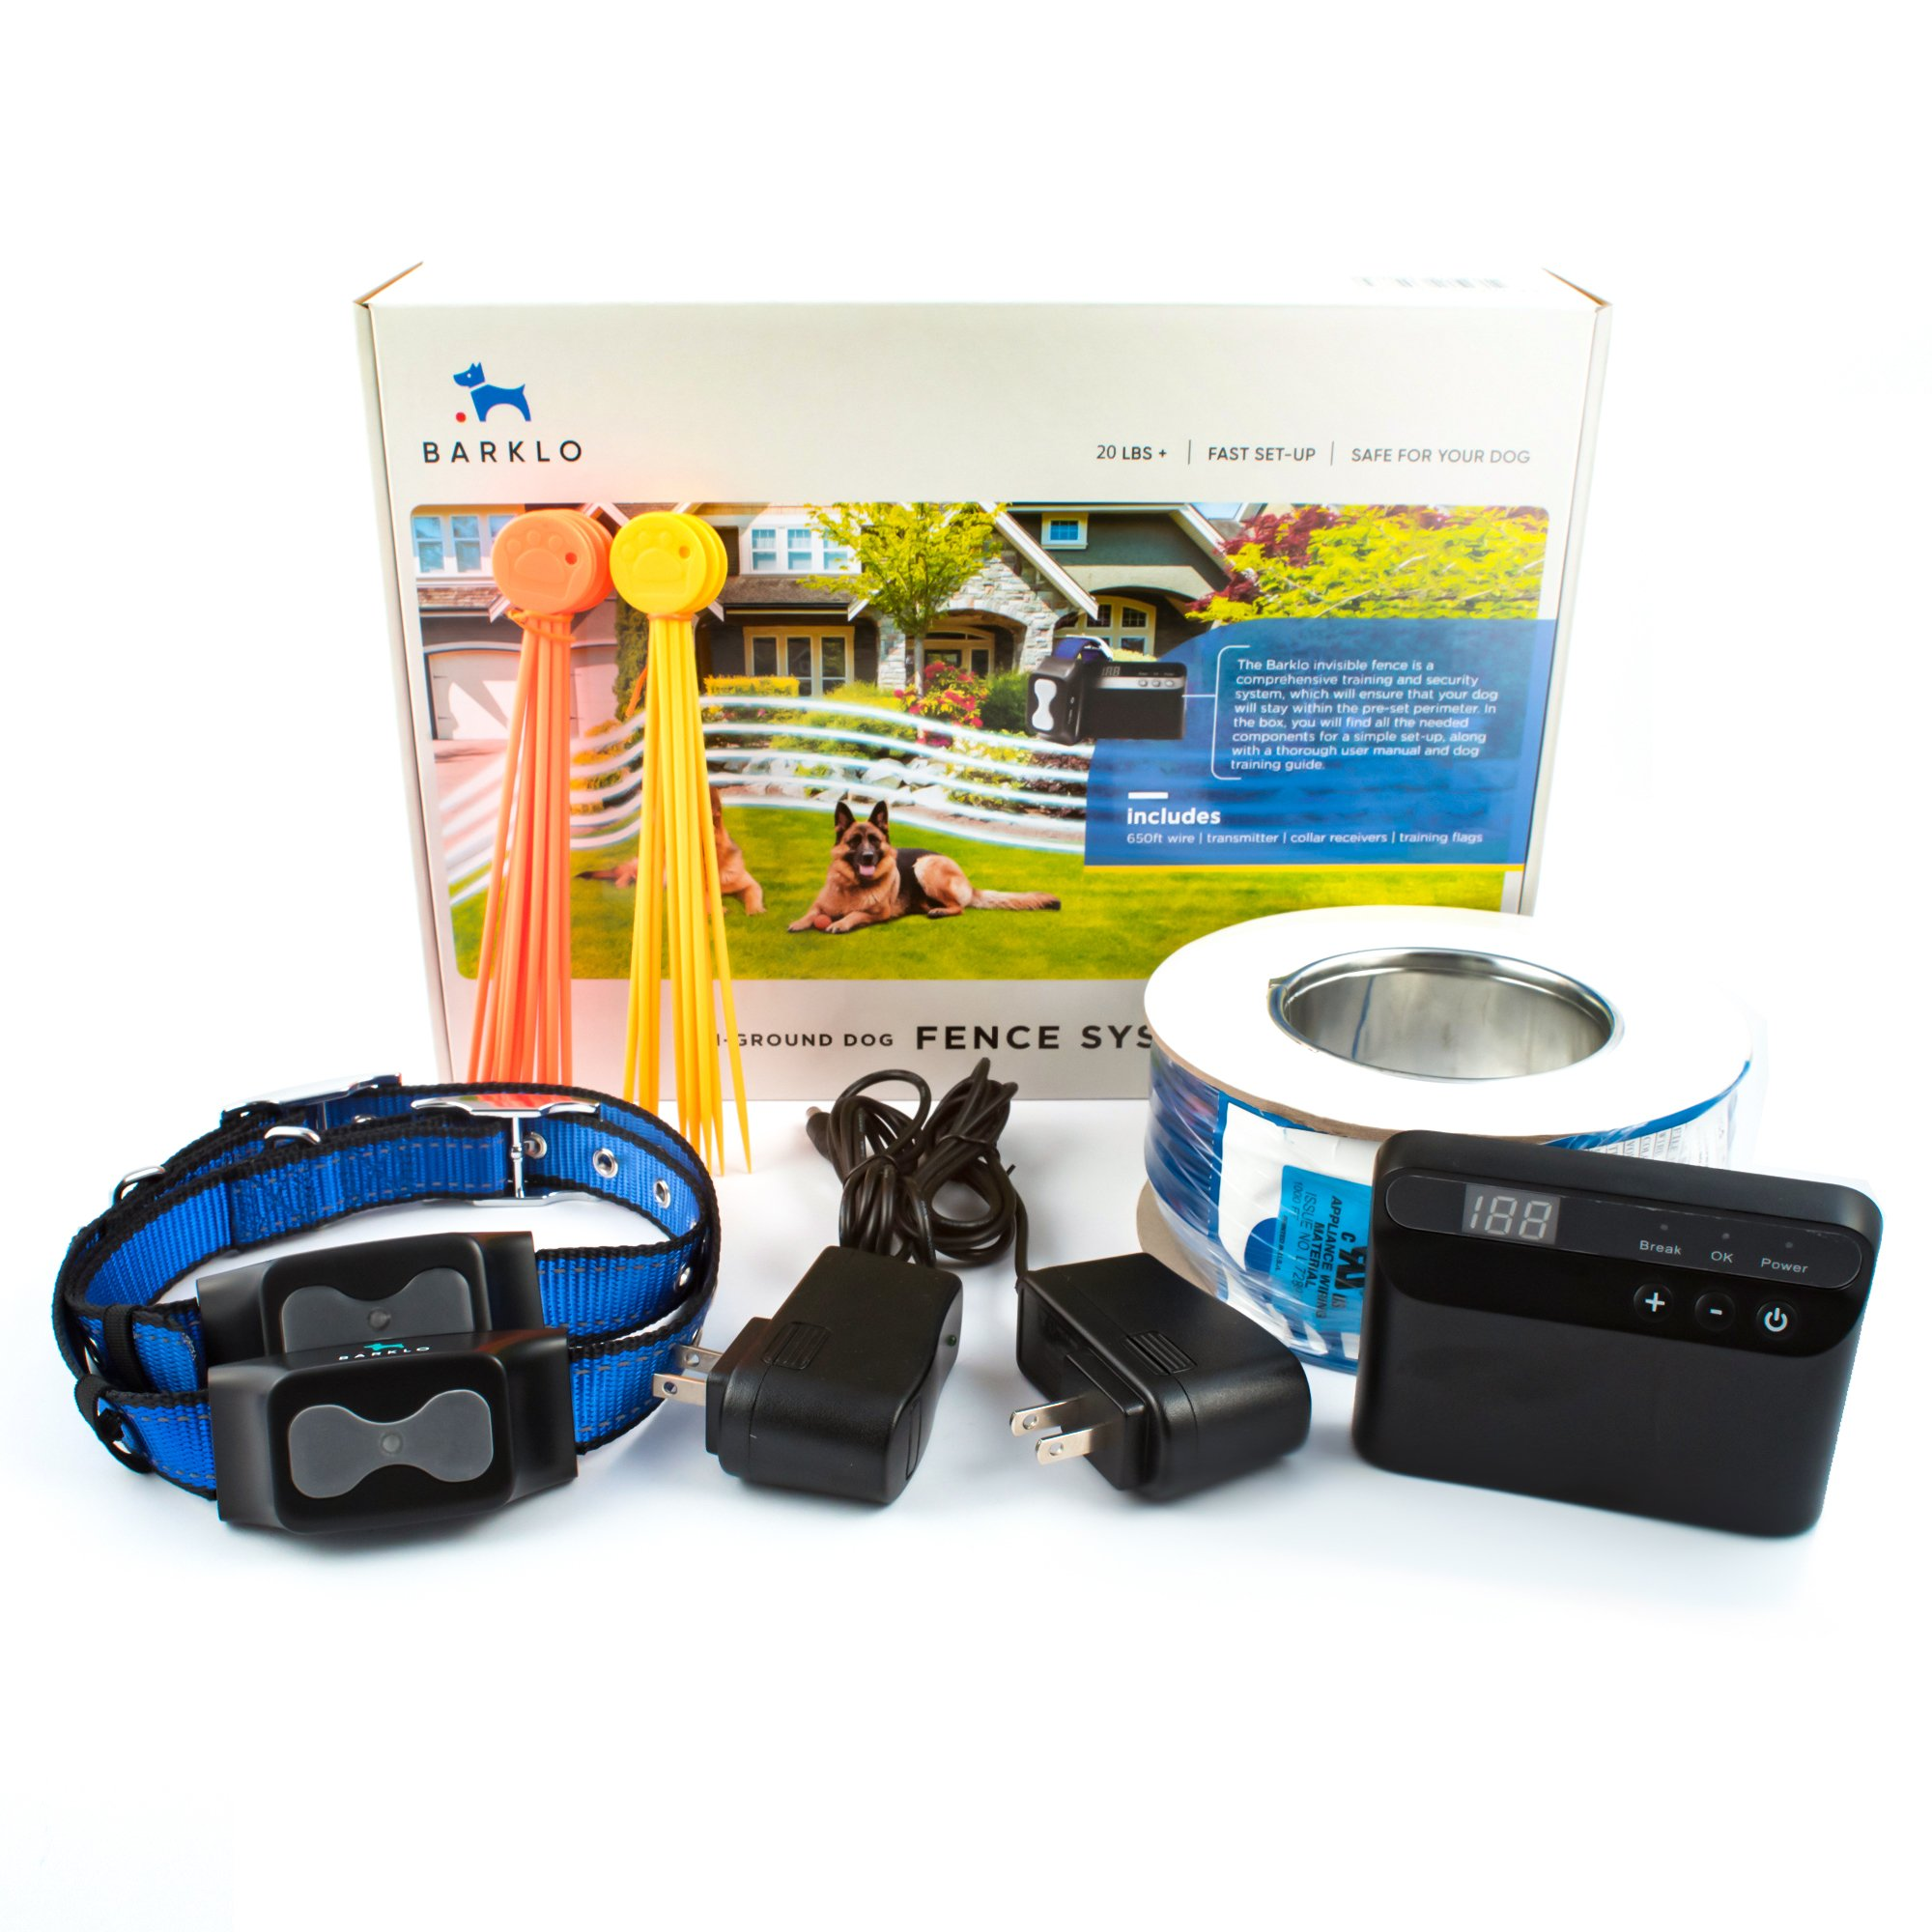 Invisible Fence Underground Dog Containment System by Barklo Wireless Electric Perimeter Fence with 2 Shock Collars for Medium to Large Dogs And Pets